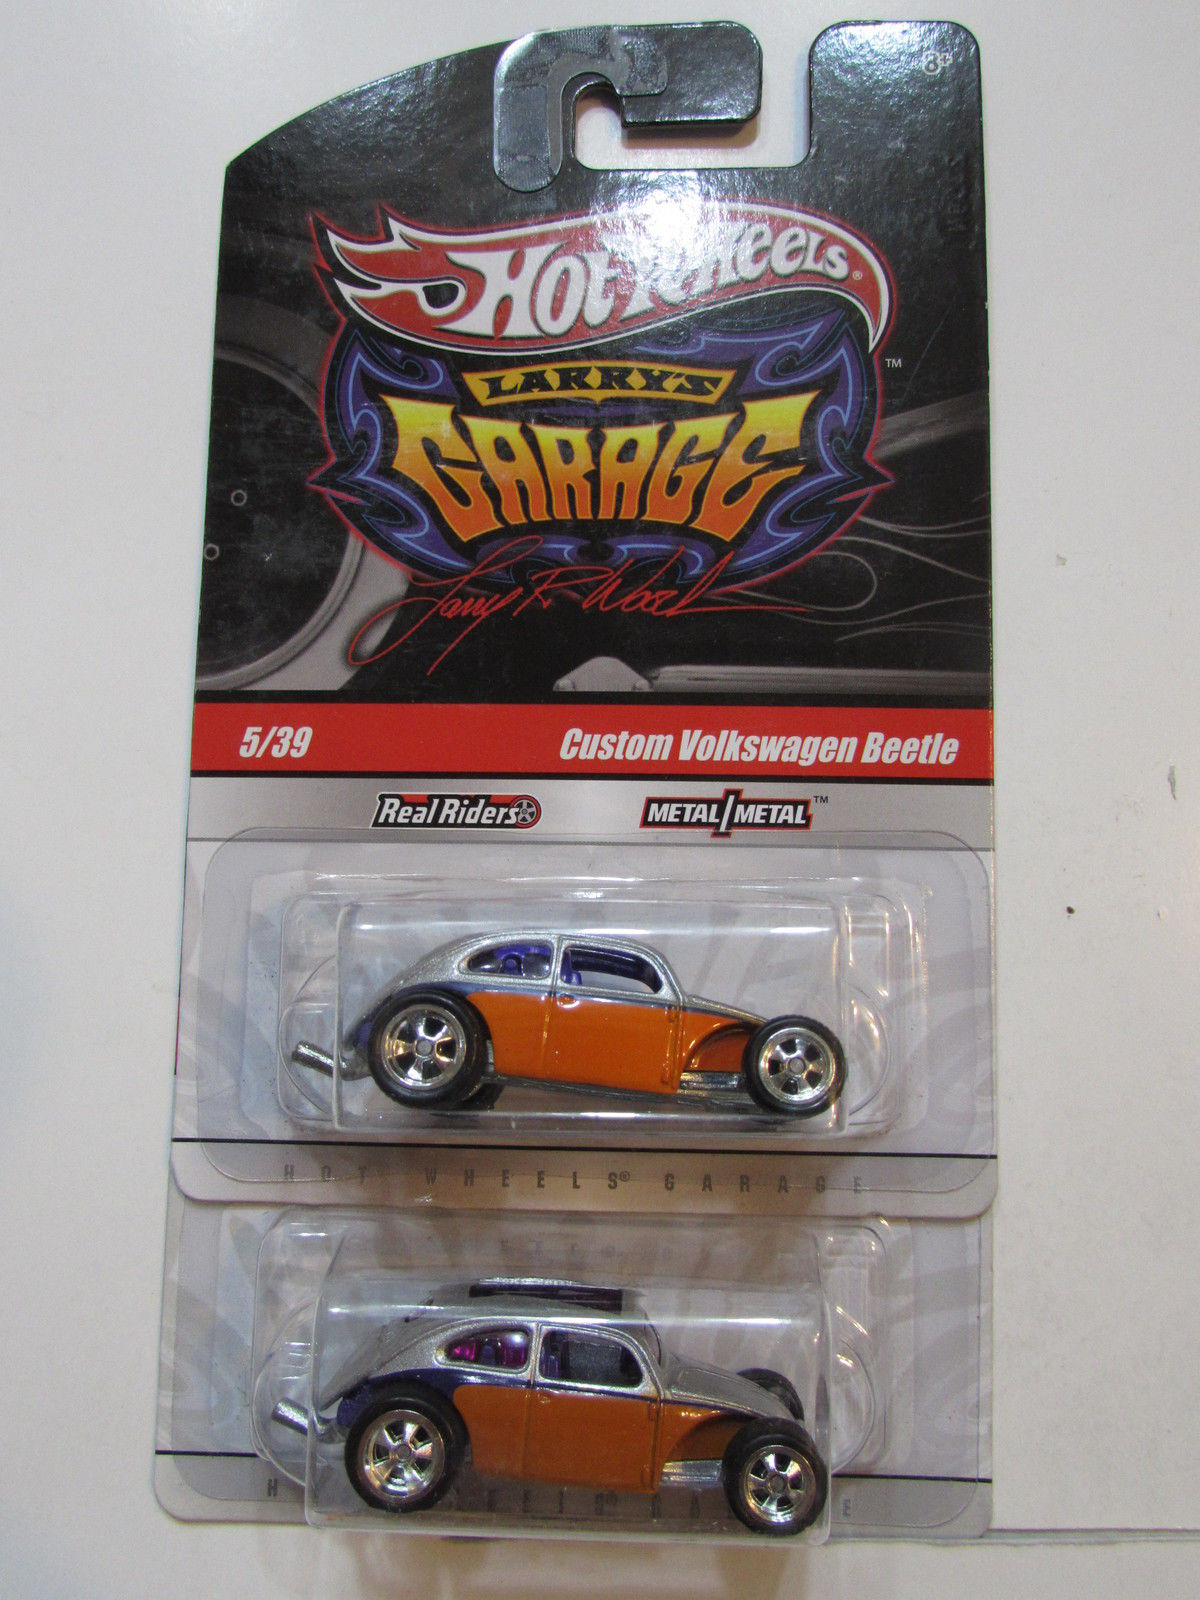 HOT WHEELS LARRY'S GARAGE #5/39 CUSTOM VOLKSWAGEN BEETLE COLOR VARIATION